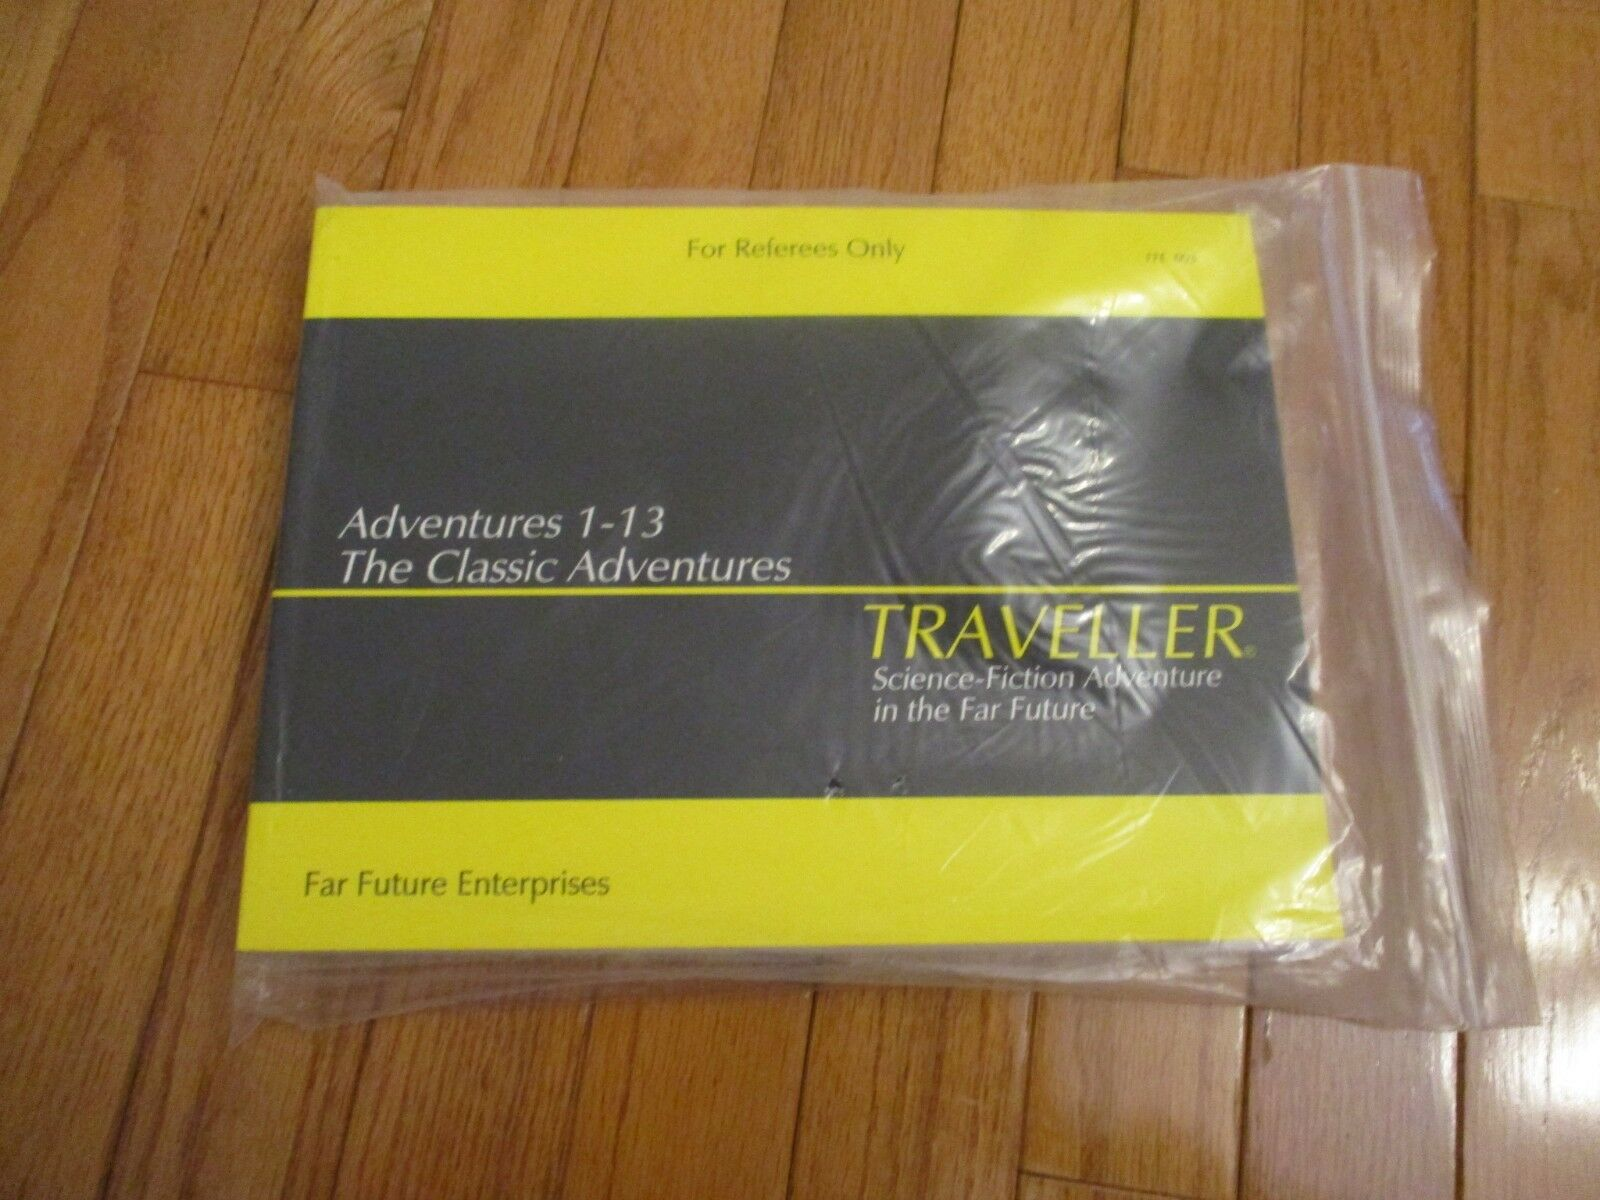 Traveller RPG Far Future Adventures 1-13 The Classic Adventures